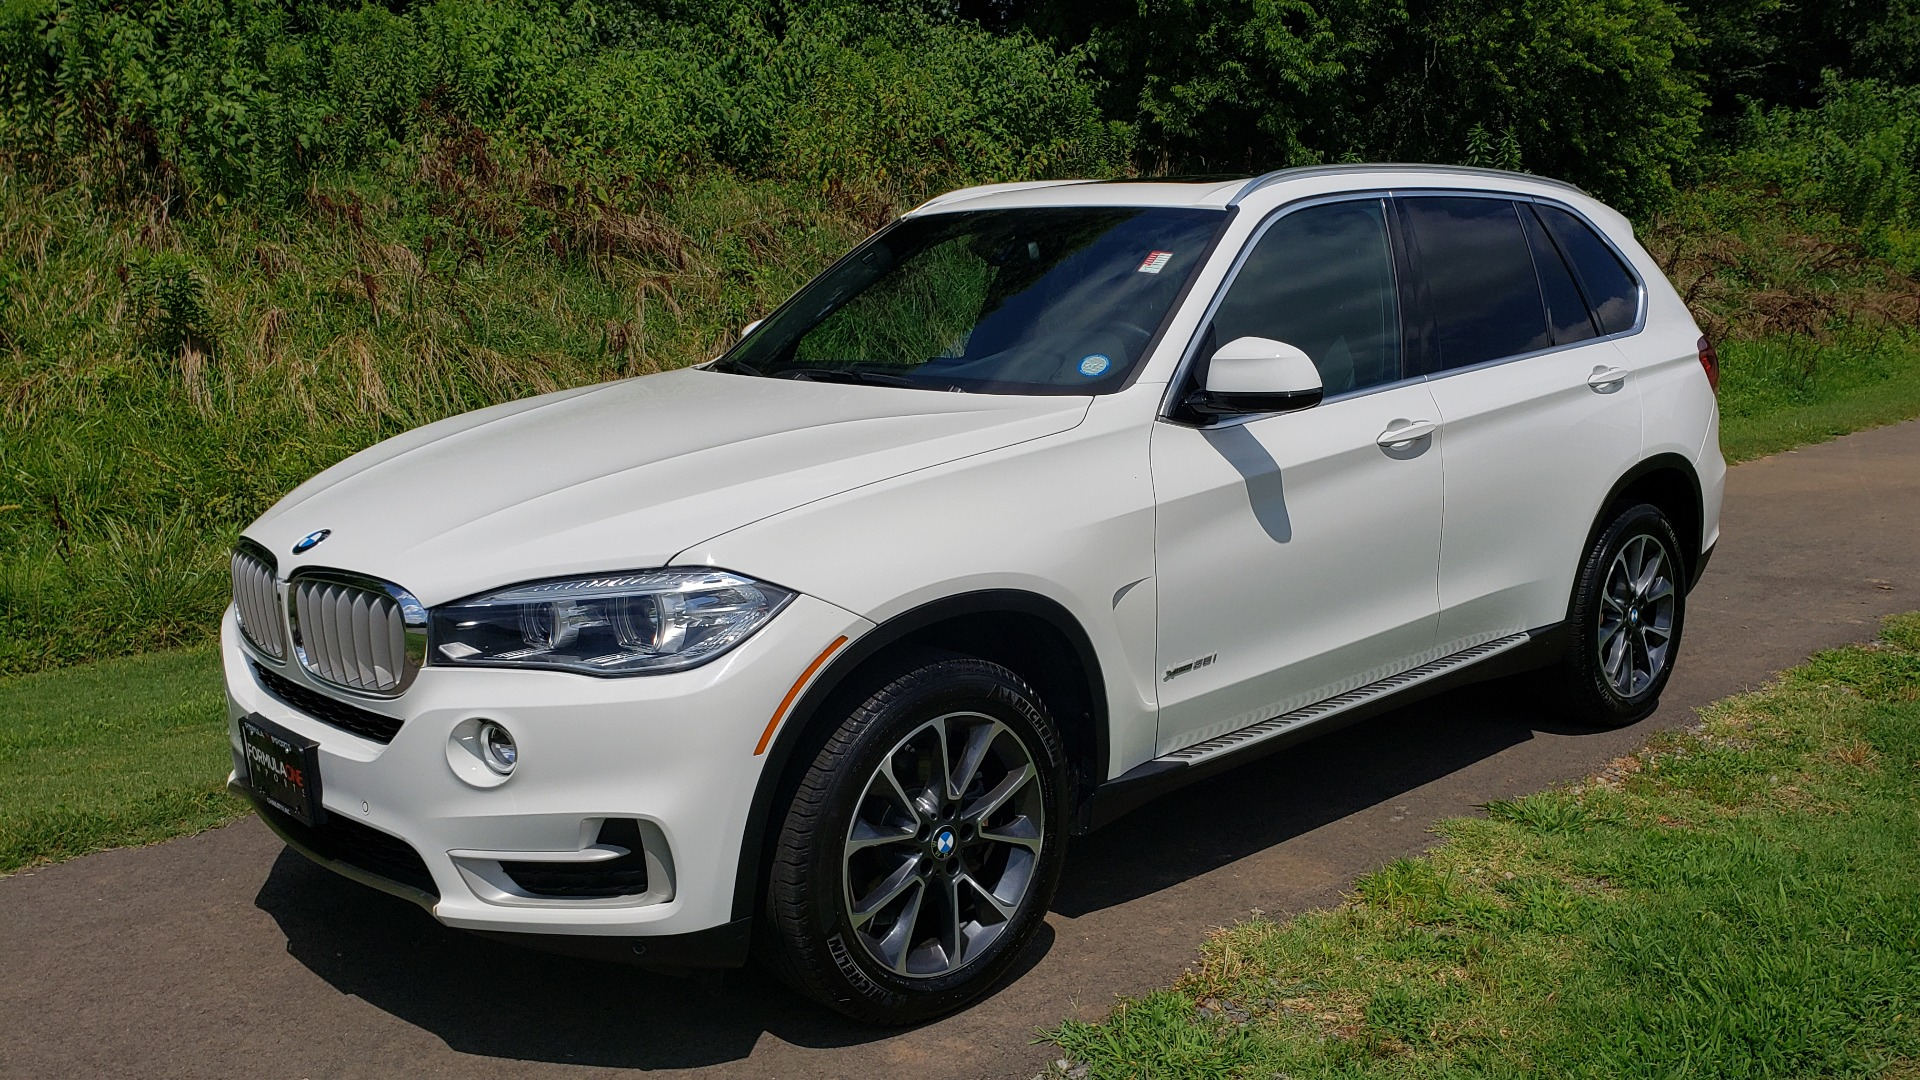 Used 2017 BMW X5 XDRIVE35I / NAV / SUNROOF / RUNNING BOARDS / REARVIEW for sale $33,995 at Formula Imports in Charlotte NC 28227 1